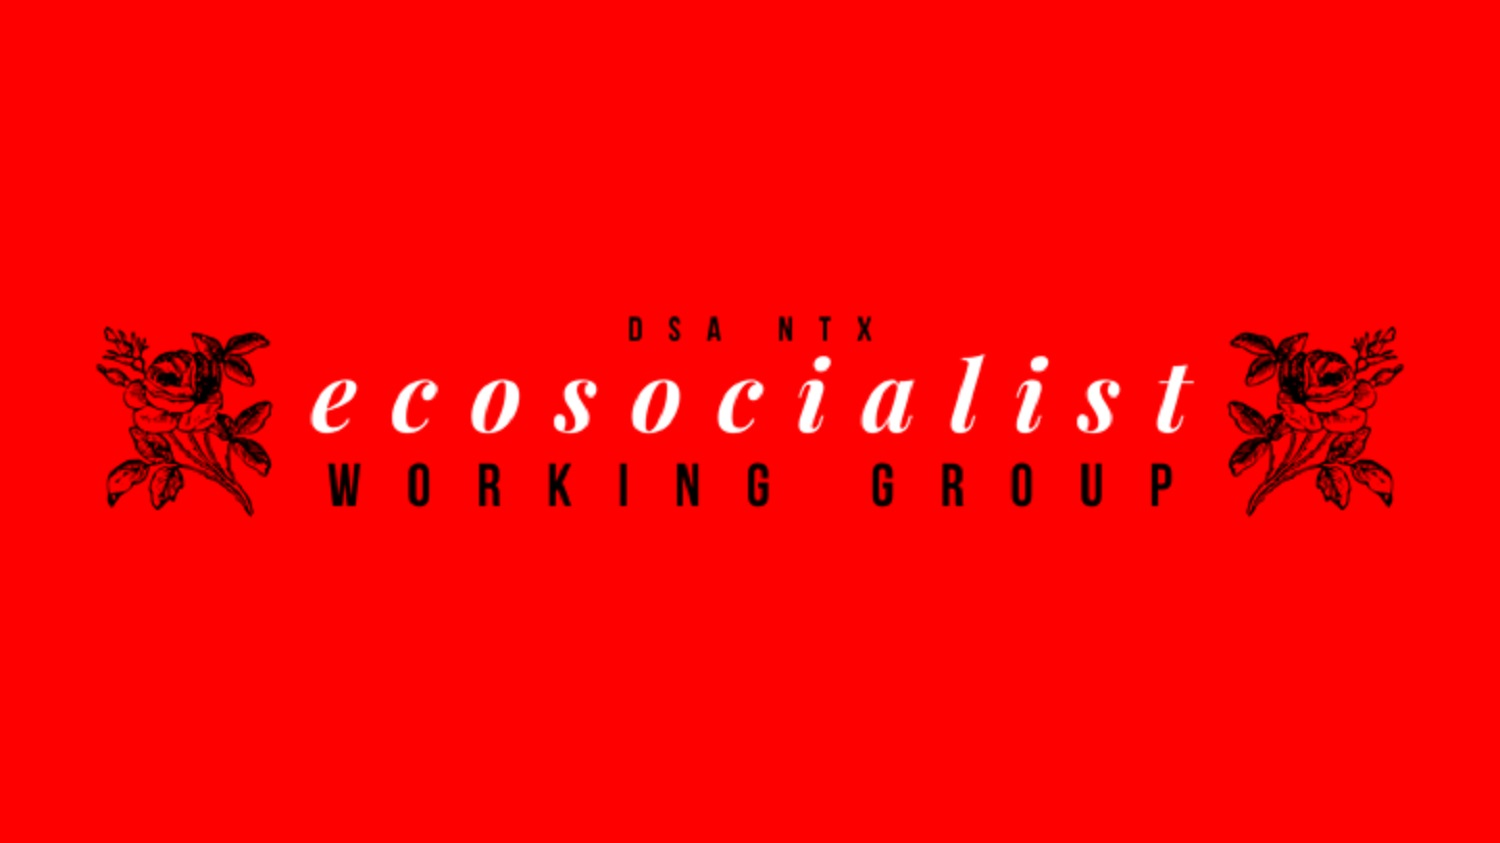 Ecosocialist_working_group_meeting_fb_event_cover_1500